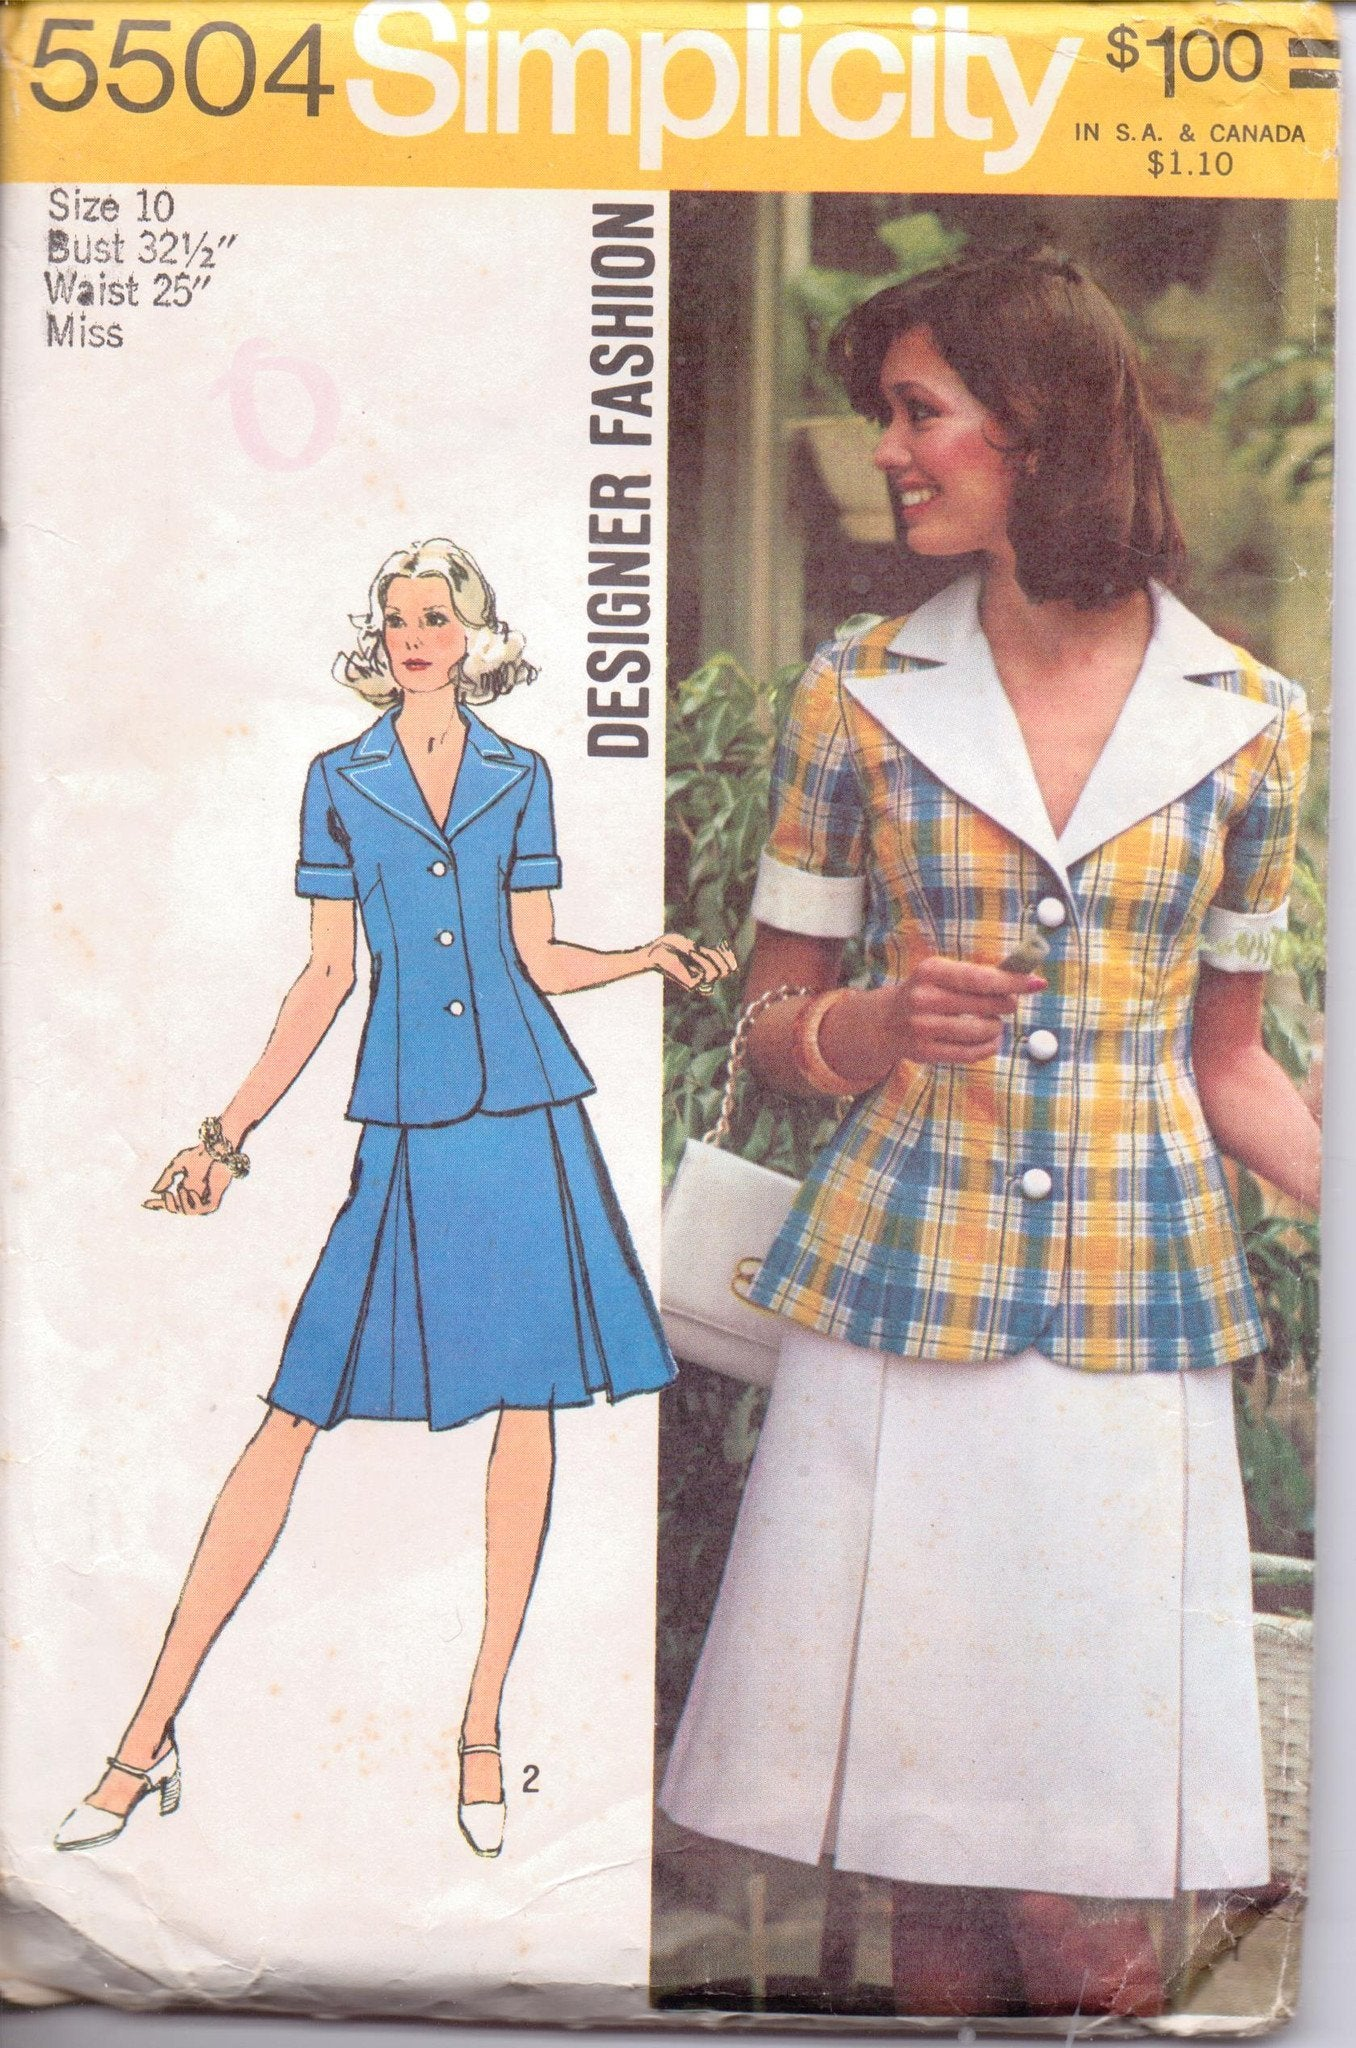 Simplicity 5504 Ladies Two Piece Dress Top Skirt Vintage 1970's Sewing Pattern Size 10 Bust 32 - VintageStitching - Vintage Sewing Patterns